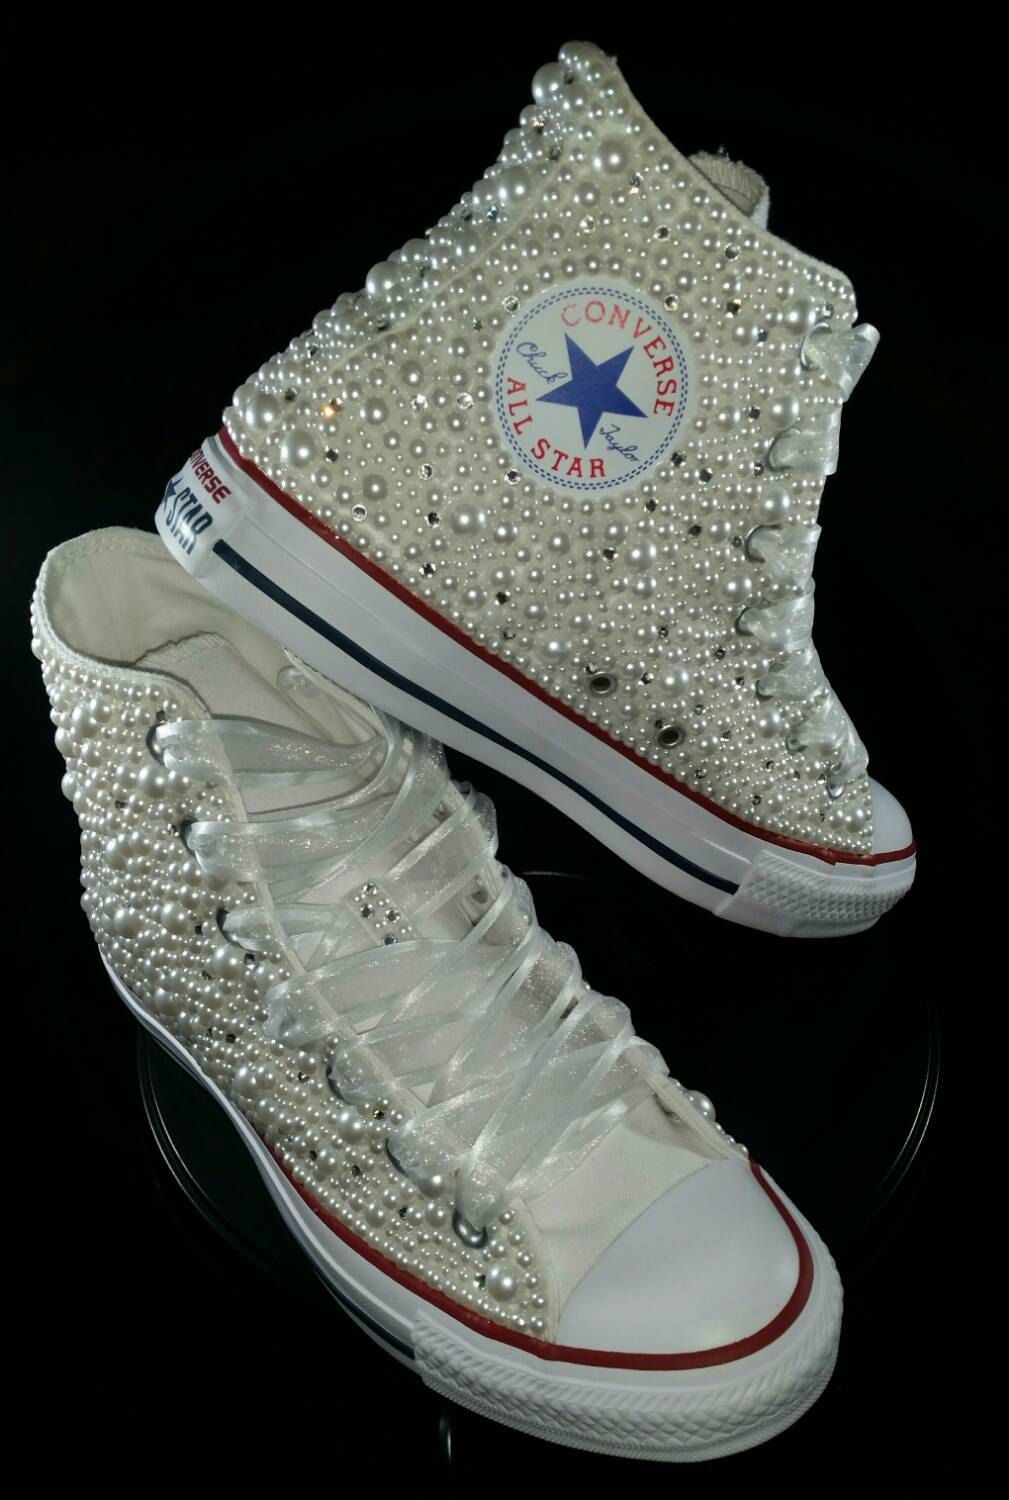 e074814e0ada Bridal Converse- Wedding Converse- Bling   Pearls Custom Converse Sneakers-  Personalized Chuck Taylors- All Star Converse Sneakers- Bride by  DivineUnlimited ...